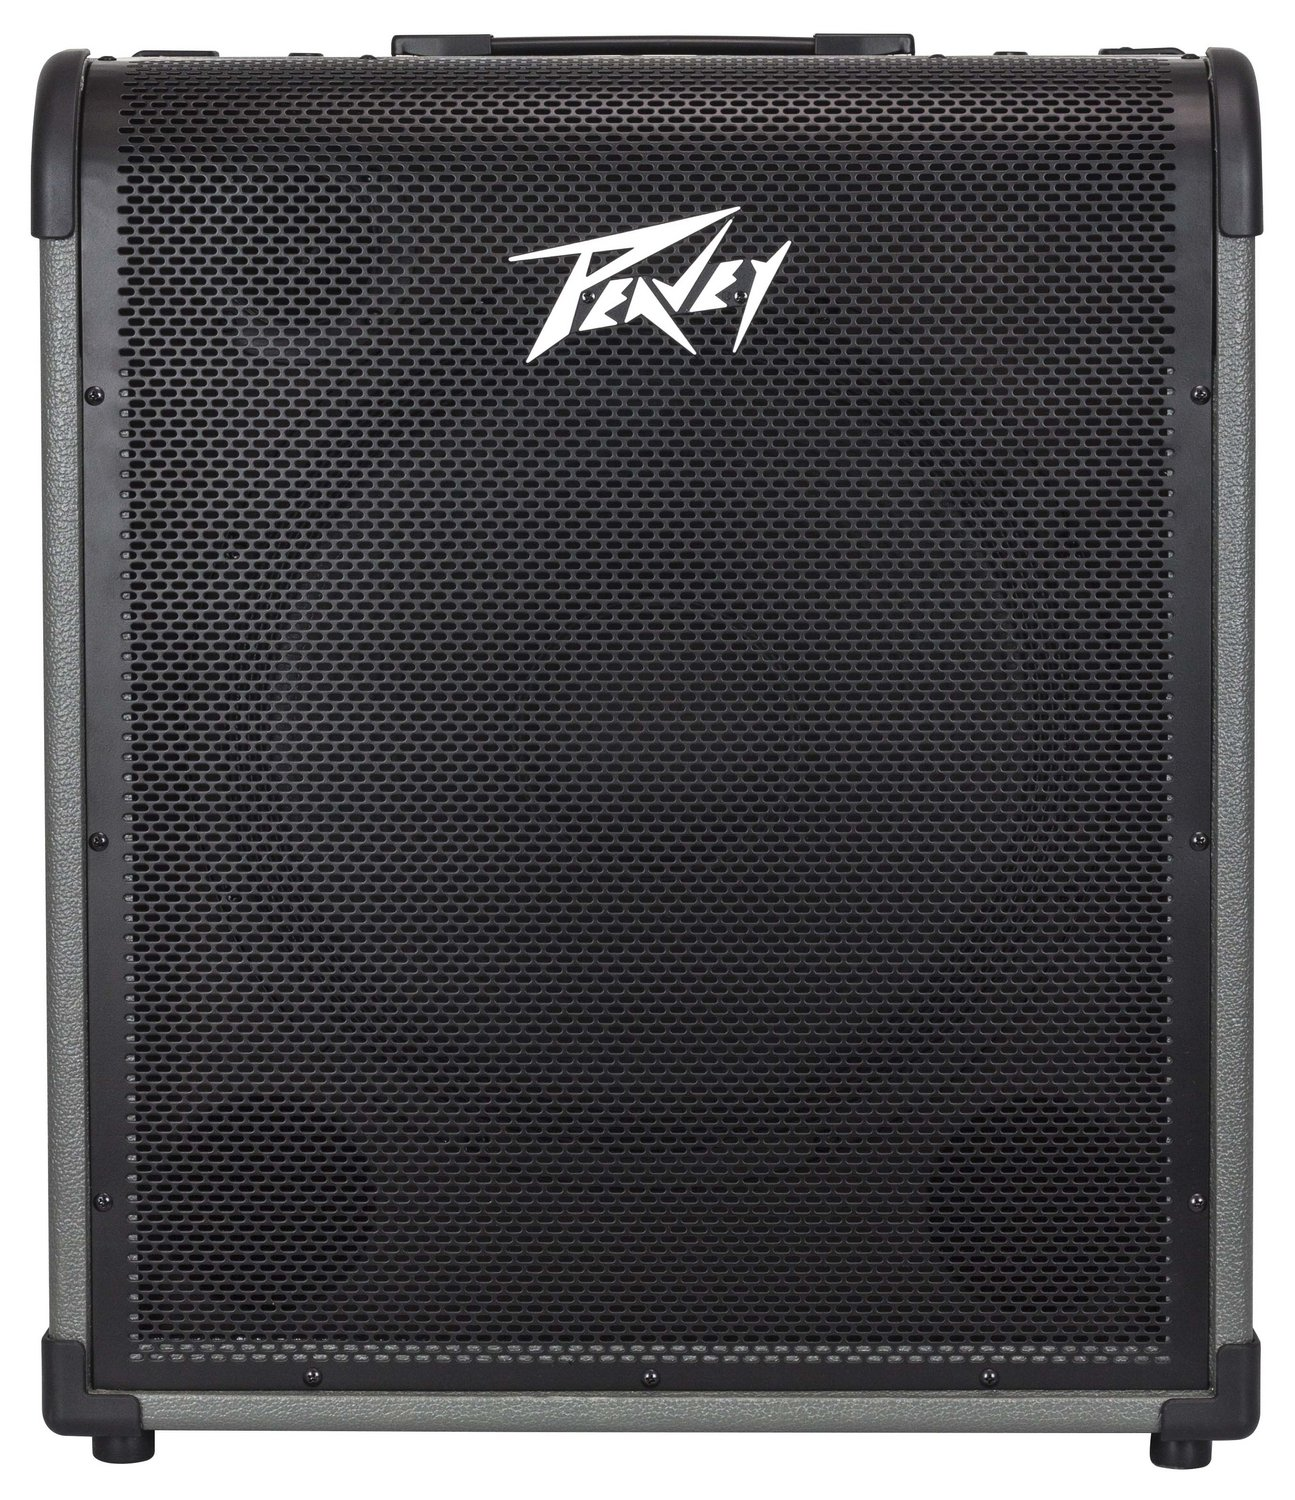 PEAVEY MAX 250 BASS AMPLIFIER COMBO 1X15 250 WATTS  (03616850)